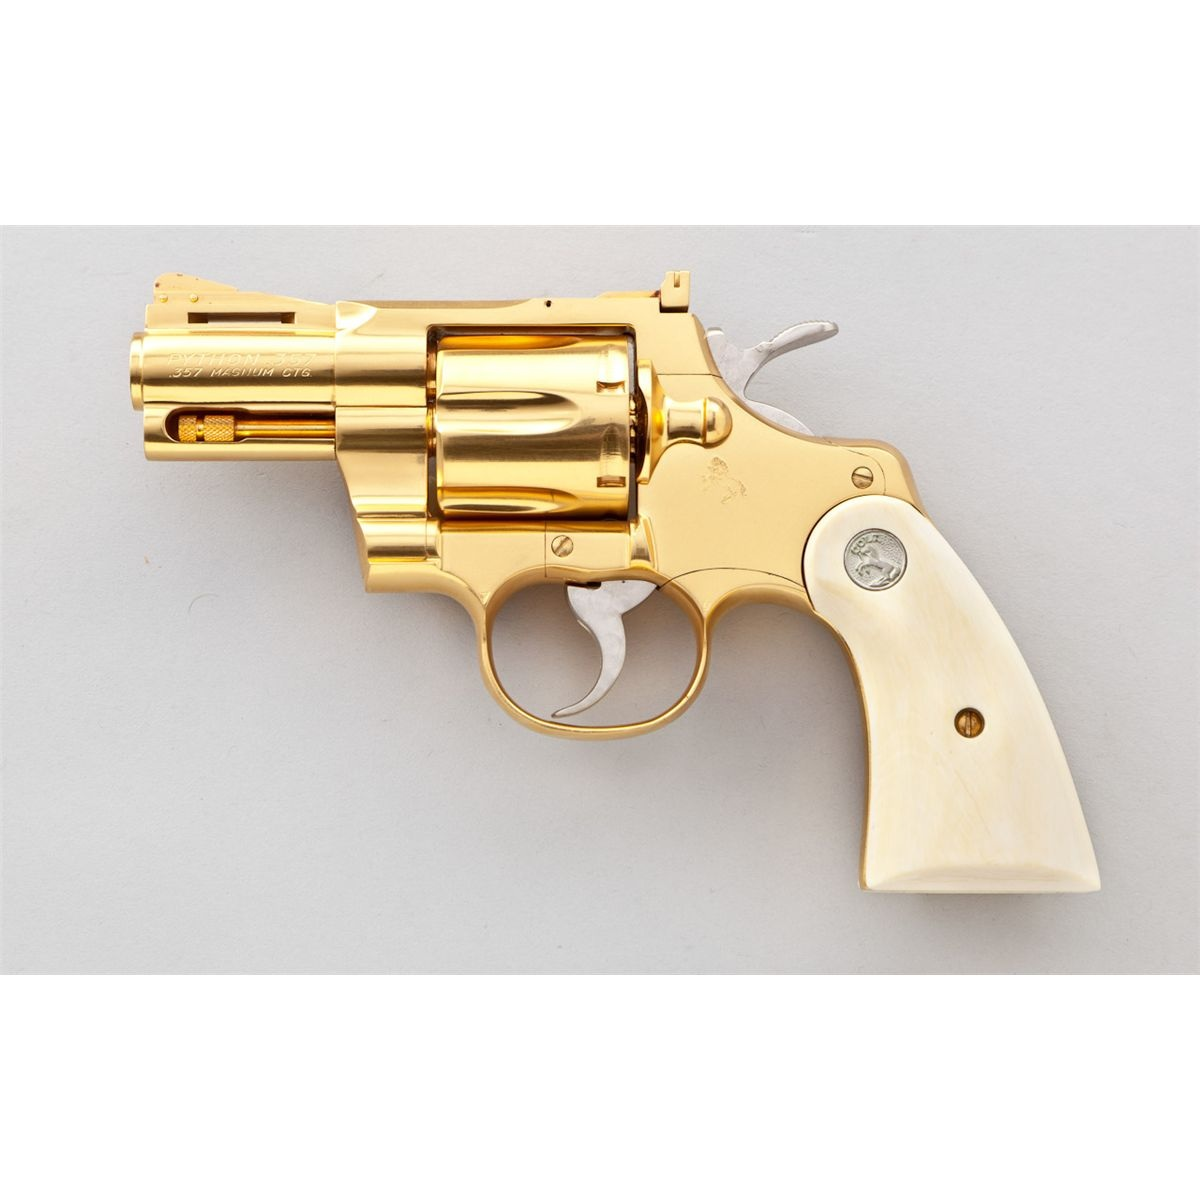 1200x1200 Gold Plated Colt Python 357 Magnum. I Would Love A Gold 357